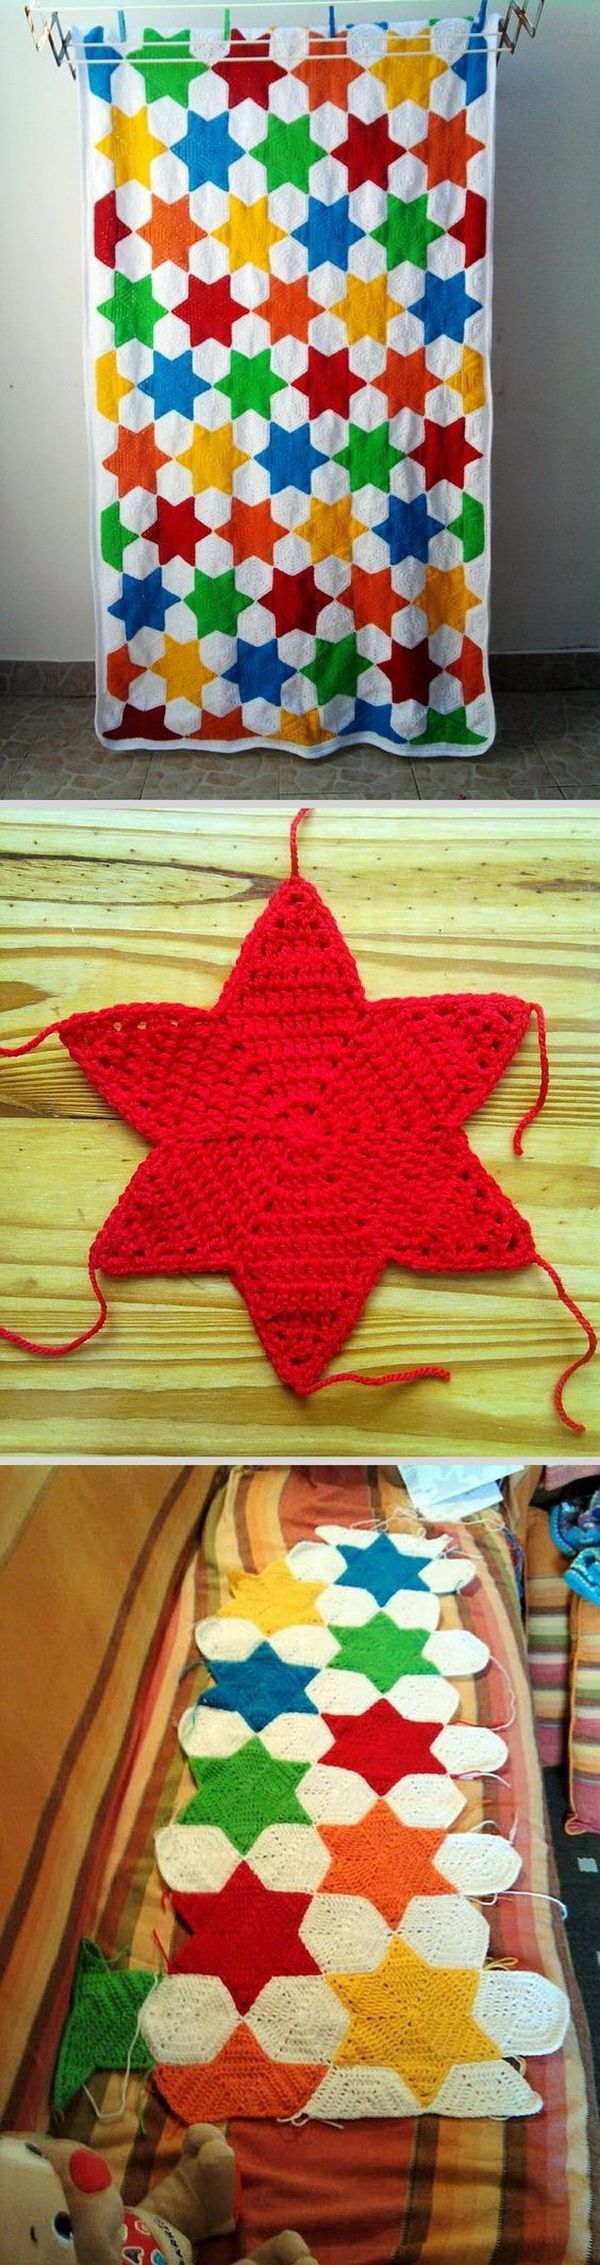 Quick And Easy Crochet Blanket Patterns For Beginners: Hexagon-based Star Blanket.